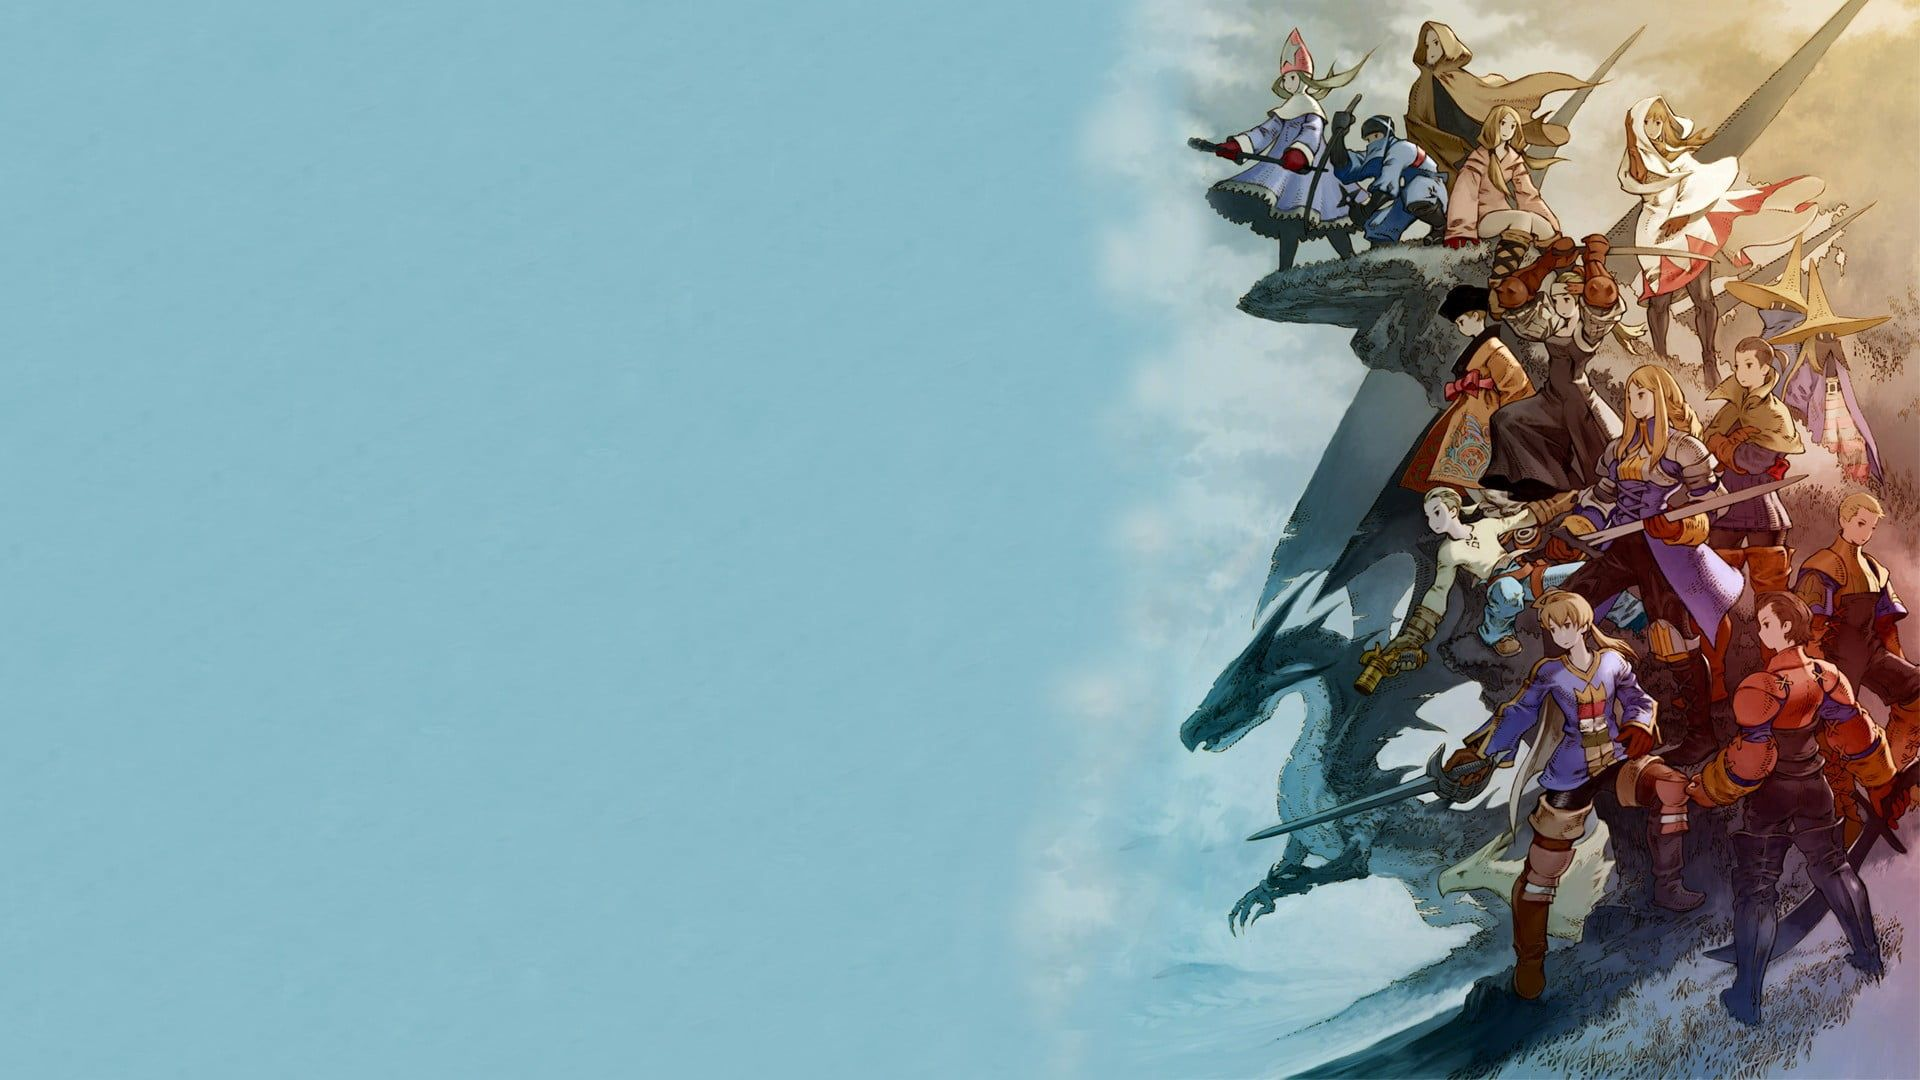 Anime Hd Wallpaper Final Fantasy Final Fantasy Tactics War Of The